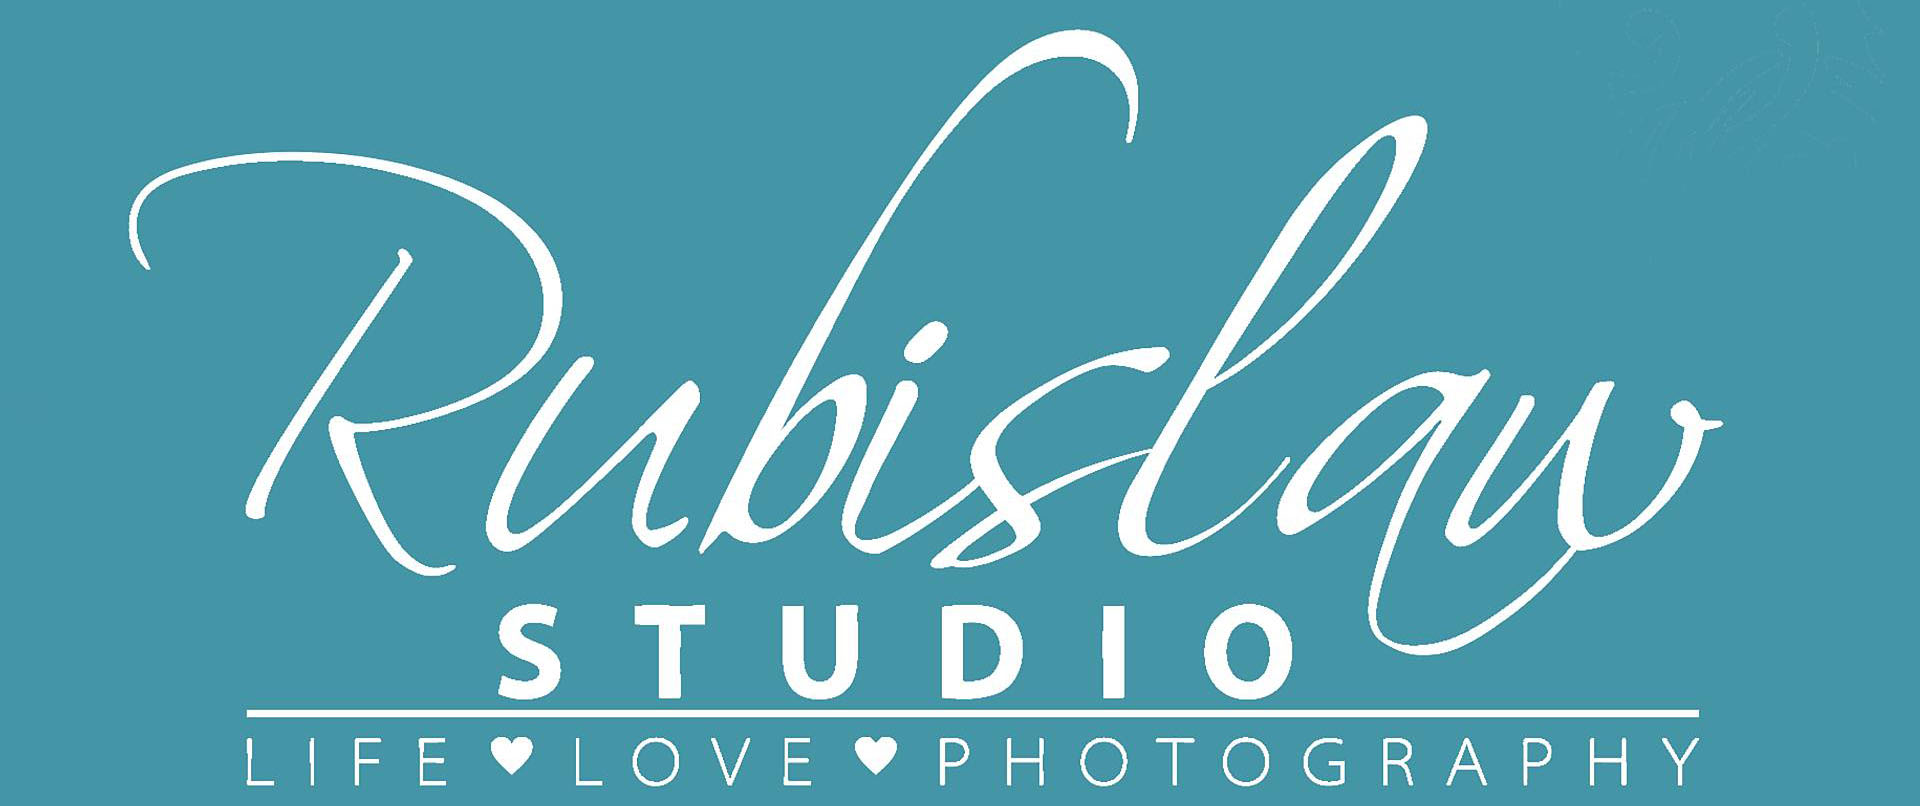 Rubislaw Studio - Wedding Photographer in Aberdeen